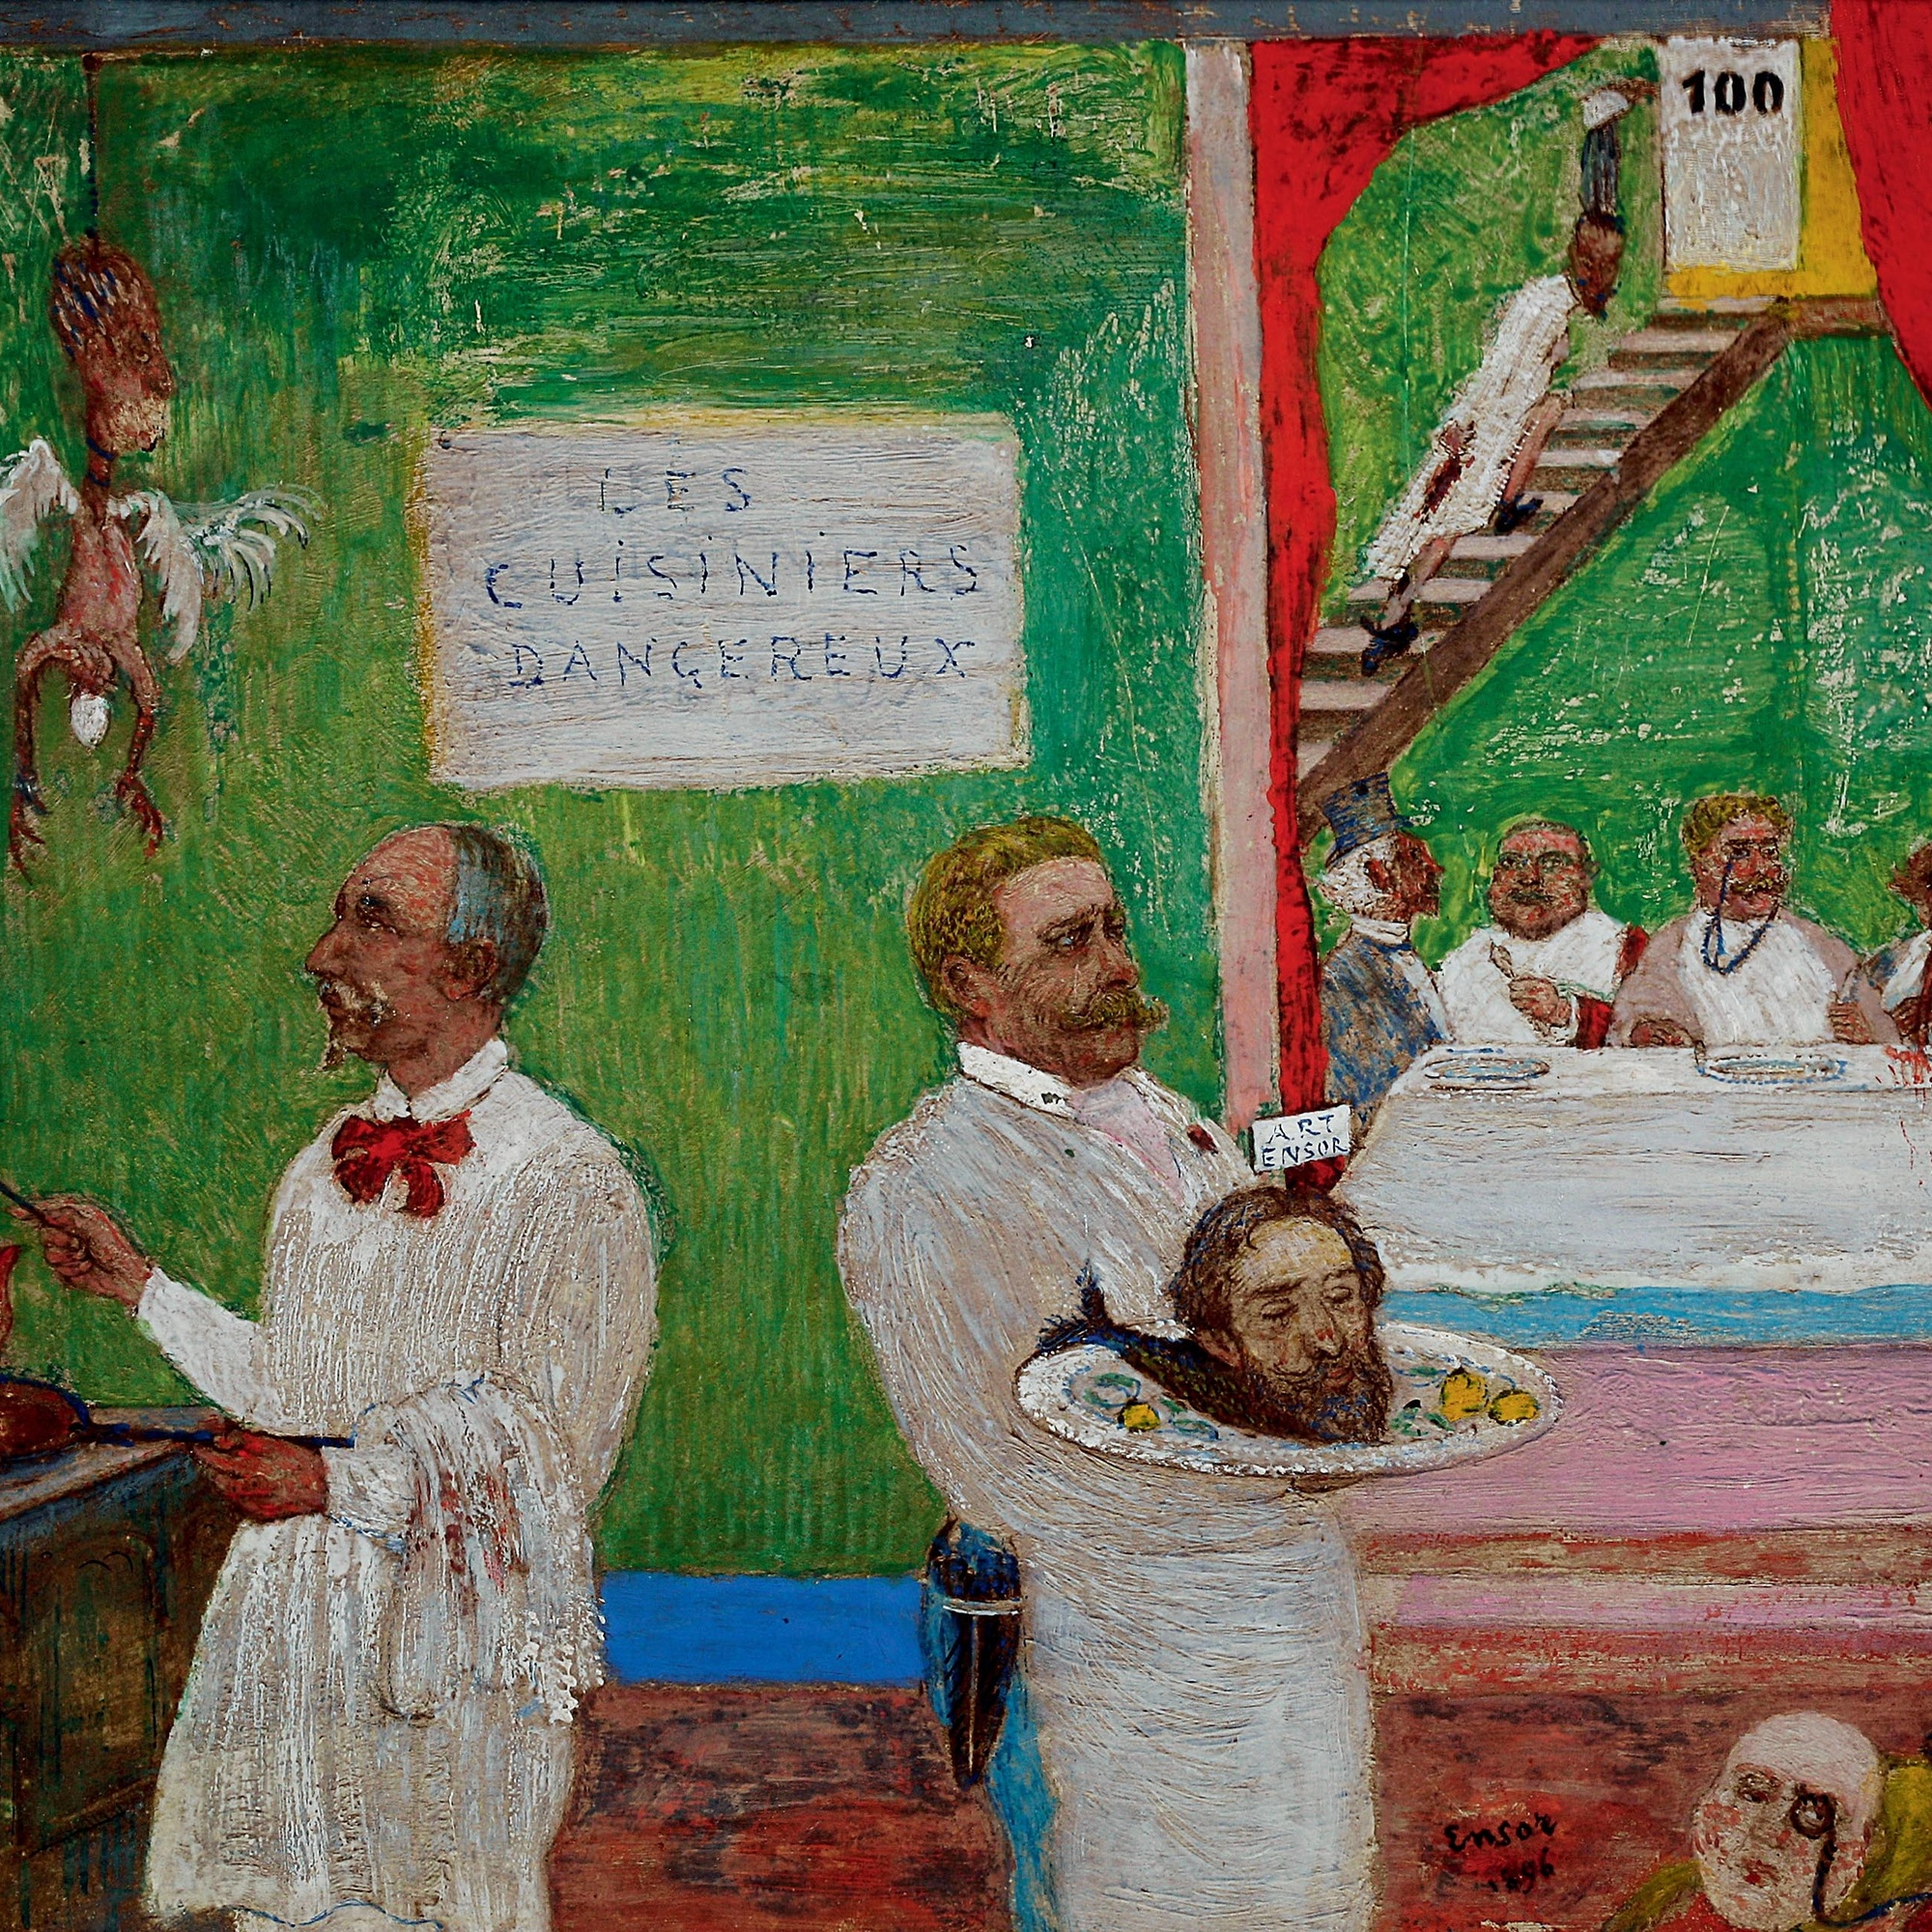 James Ensor (Belgian, 1860–1949). The Dangerous Cooks. 1896. Pencil, gouache, and oil on board, 7 7/8 × 9 13/16″. Private collection. © 2009 Artists Rights Society (ARS), New York / SABAM, Brussels